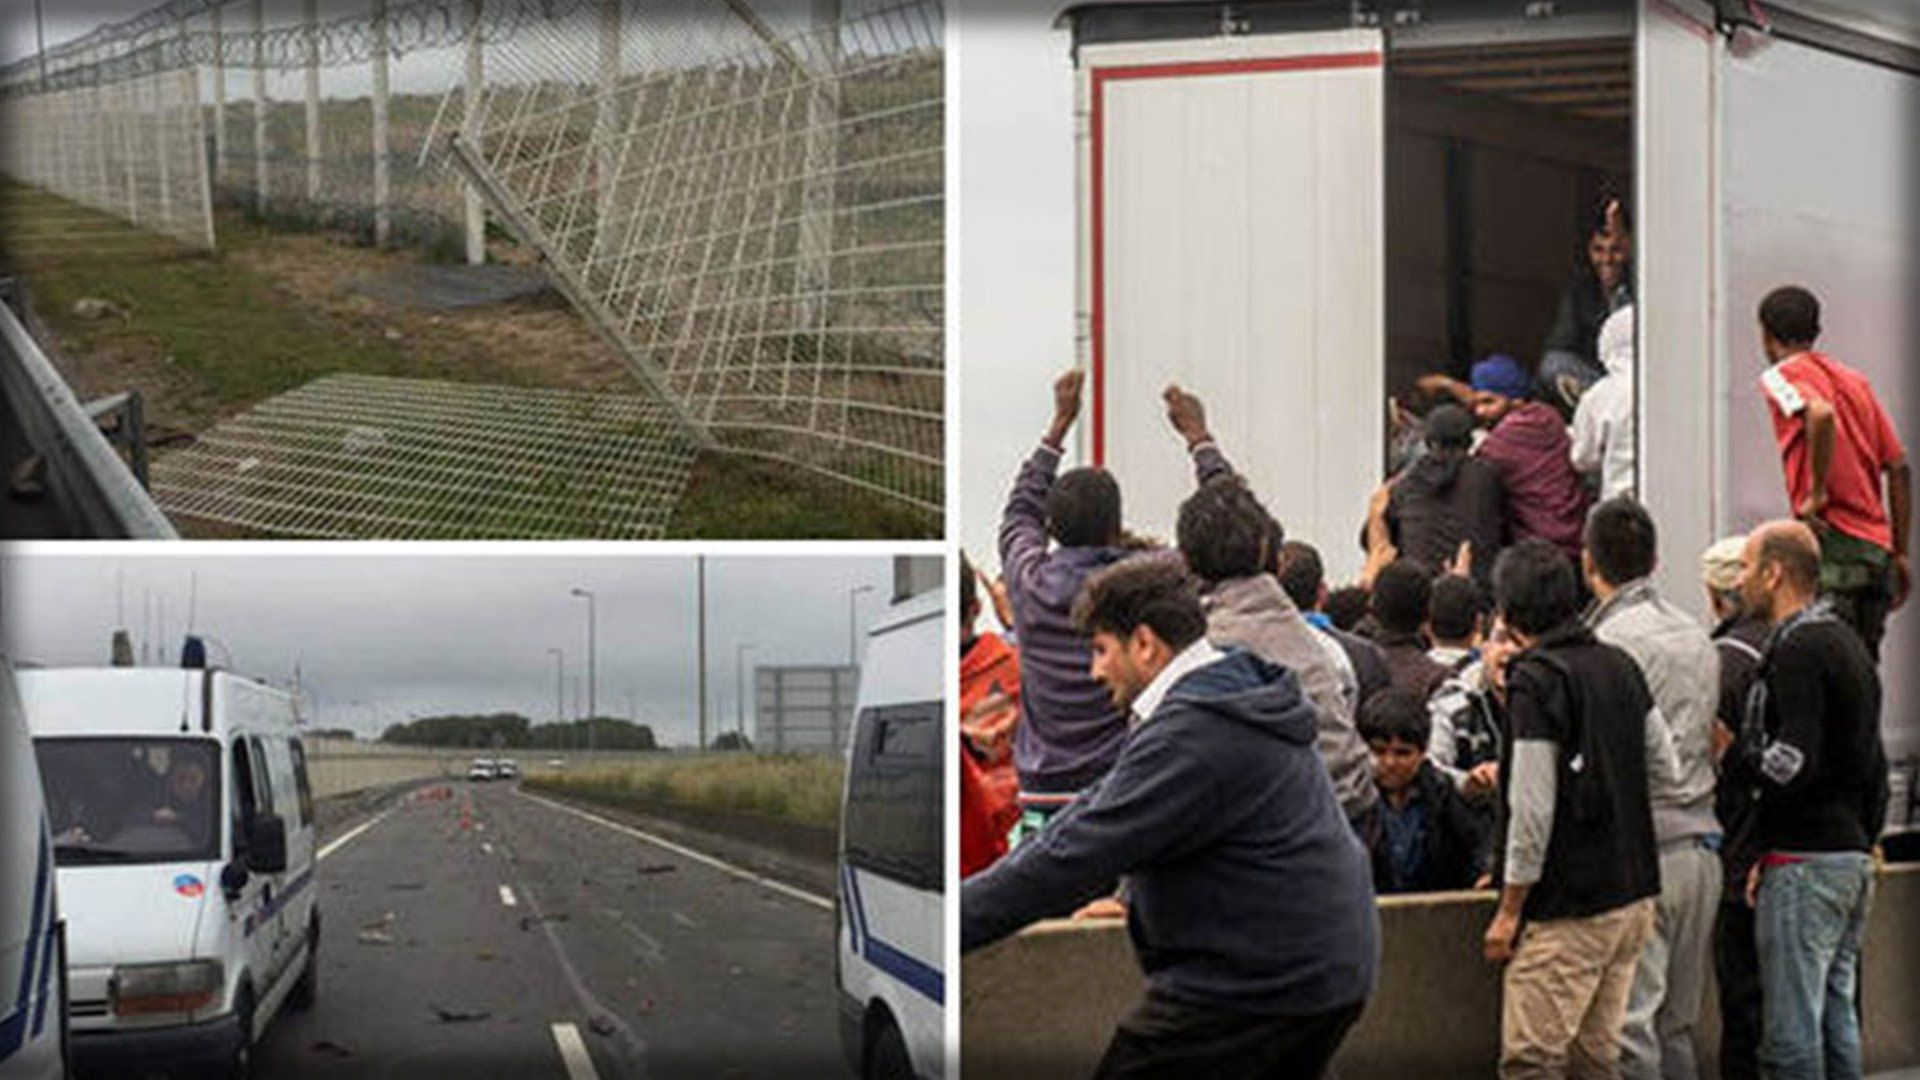 VIOLENT MIGRANTS SHUT DOWN PORT ROAD AND THROW ROCKS AT BRITISH CARS